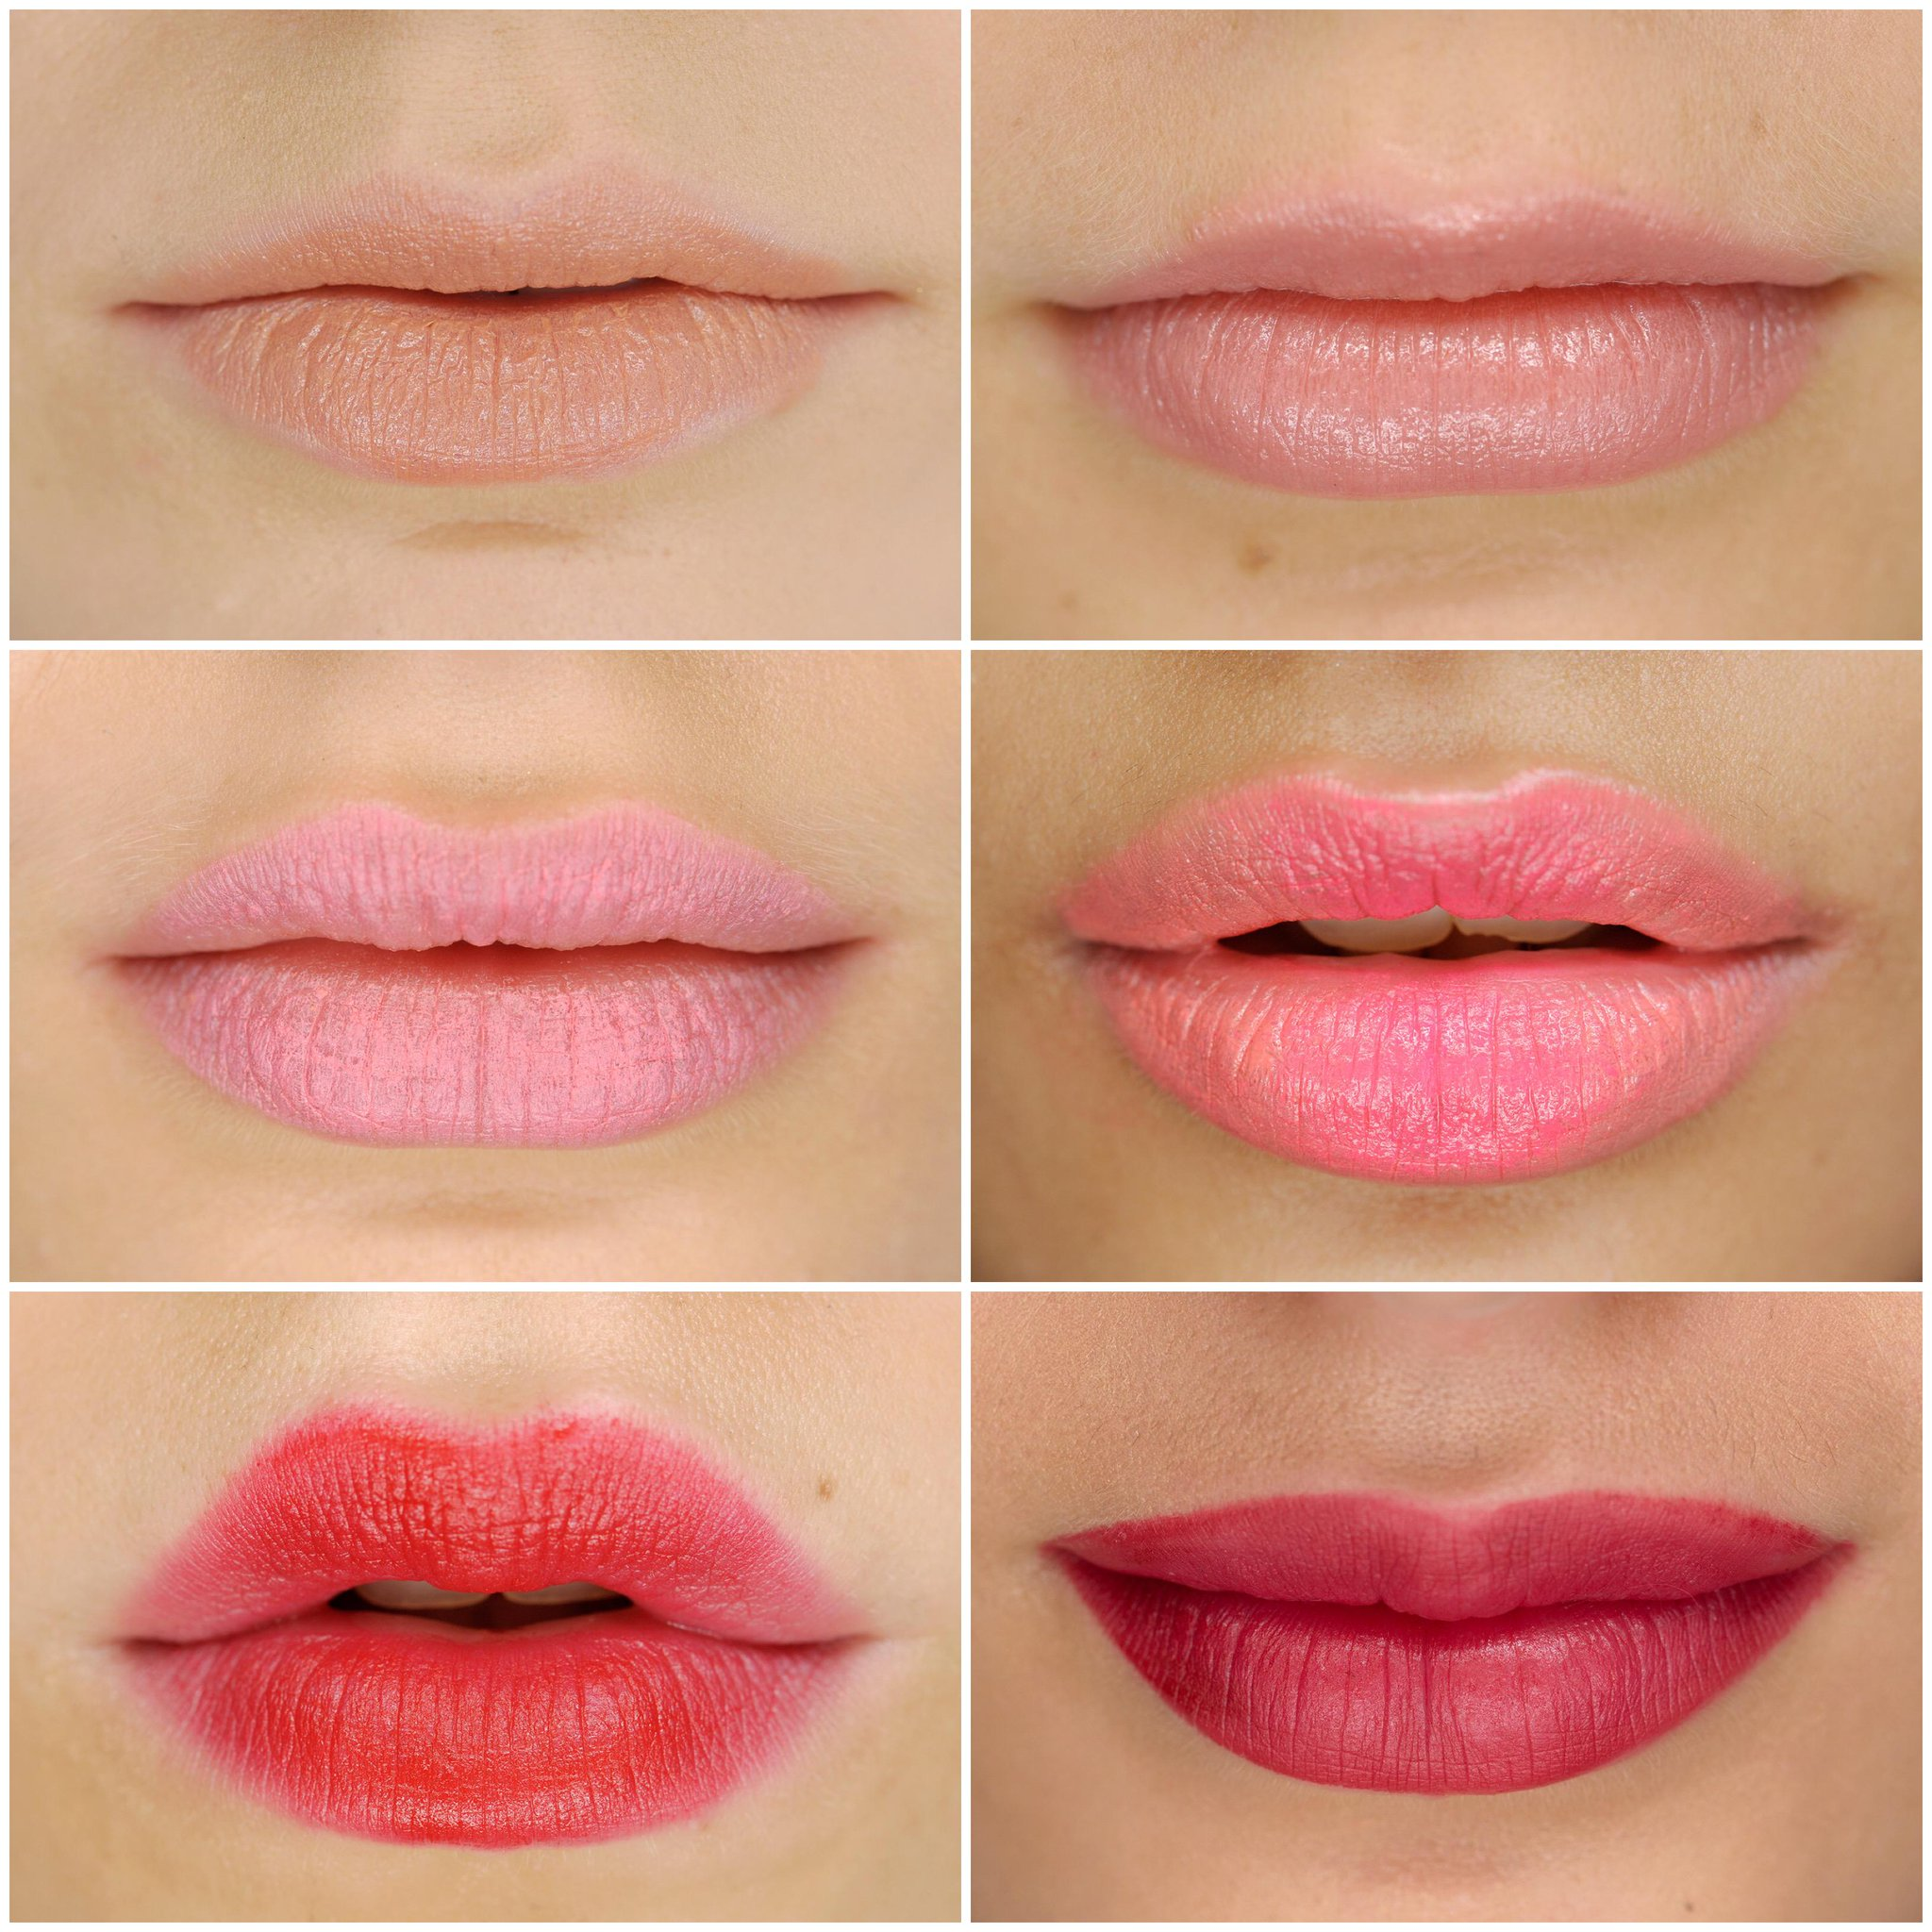 The Summer 2015 Lipstick Colour Chart: which is your perfect shade? http://t.co/LVrdqKMWo3 http://t.co/60tWTv5bK3